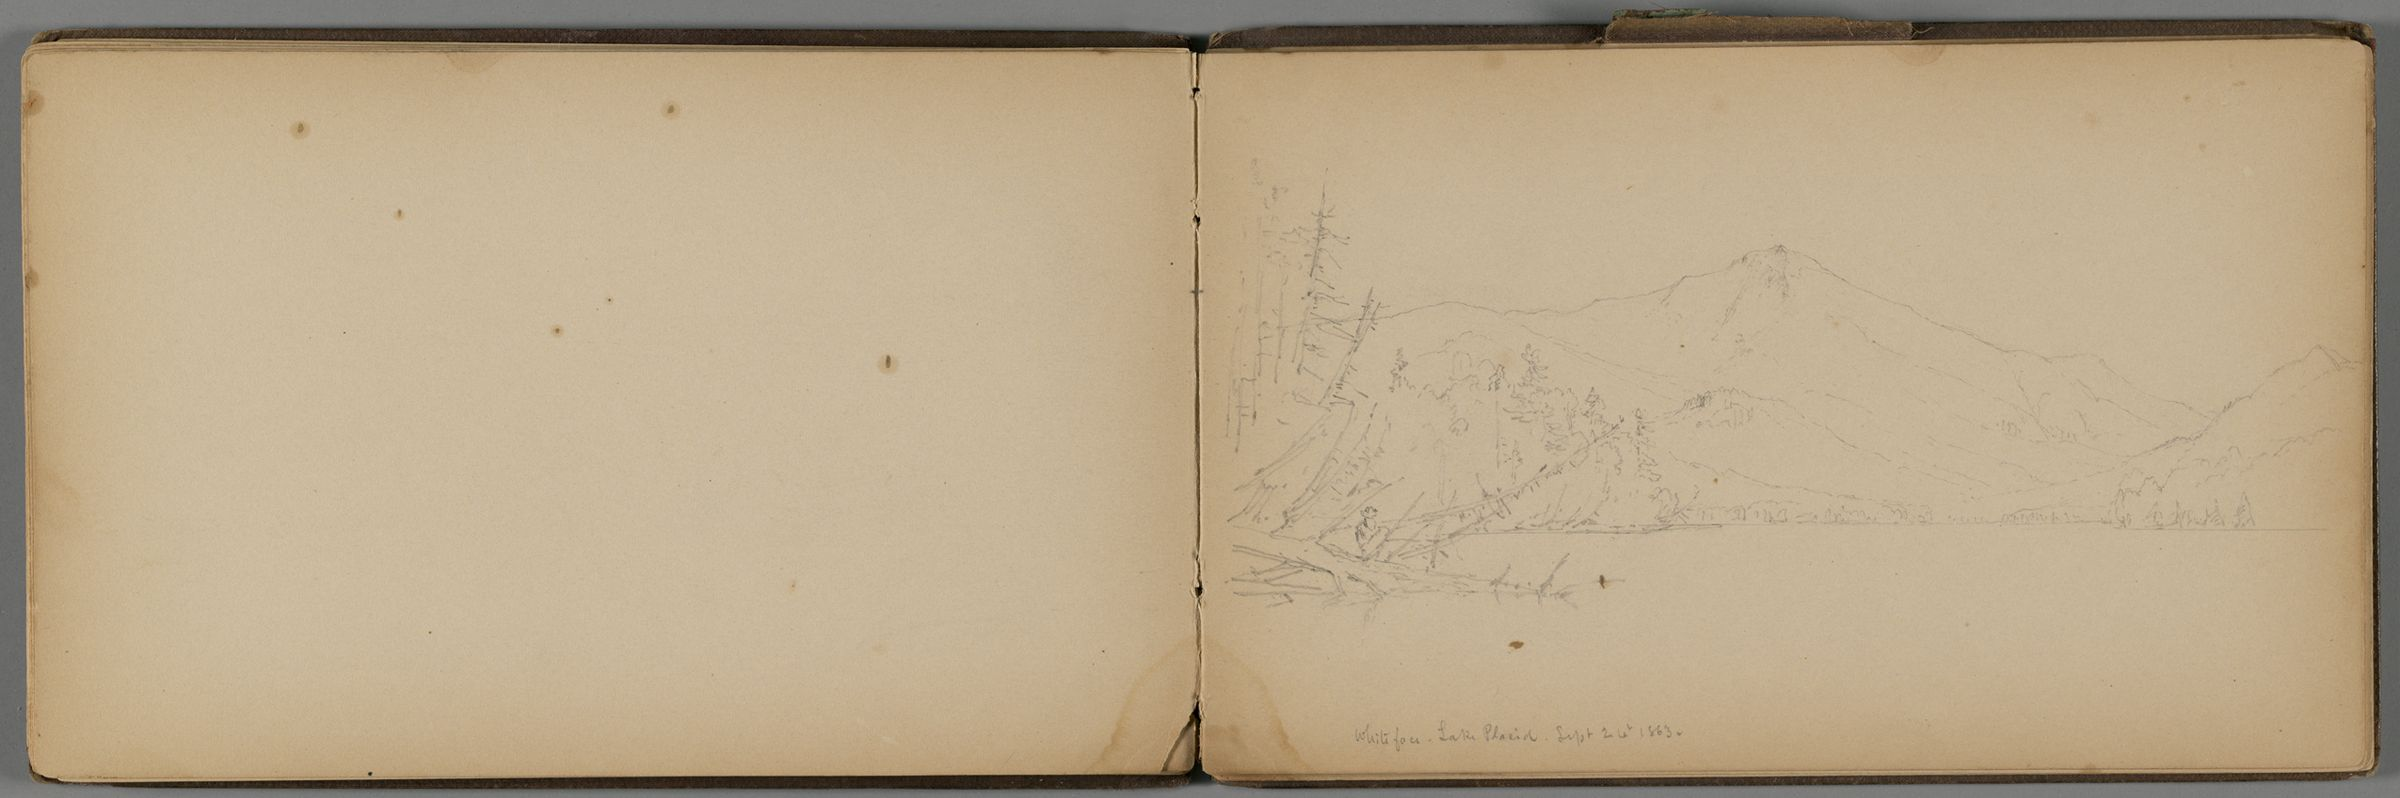 Whiteface Mountain, New York; Verso: Partial View Of Lake Placid, New York